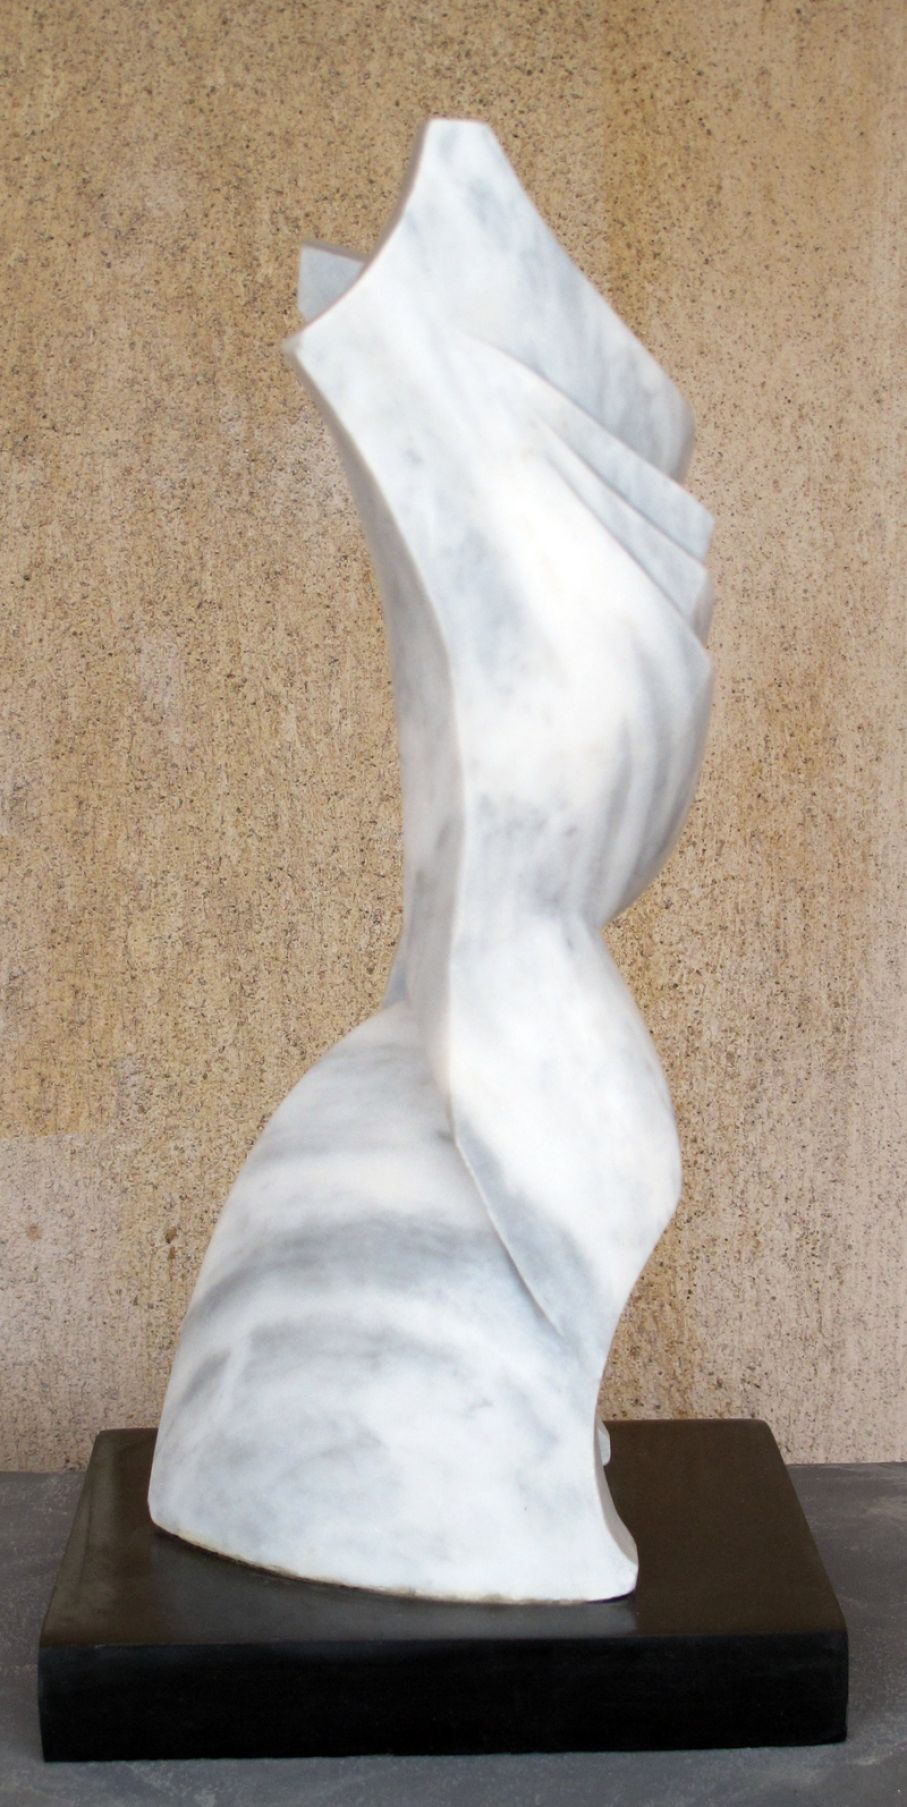 "BRIEF DESCRIPTION. Original marble sculpture of  Ciprian Hopirtean, completed within Myrό Antiques House premises, in Souroti, Thessaloniki, GREECE, as part of the Greek Marble Initiative, bearing the title ""Duality II"". Dimensions: 38 X 18 X 19 cm."